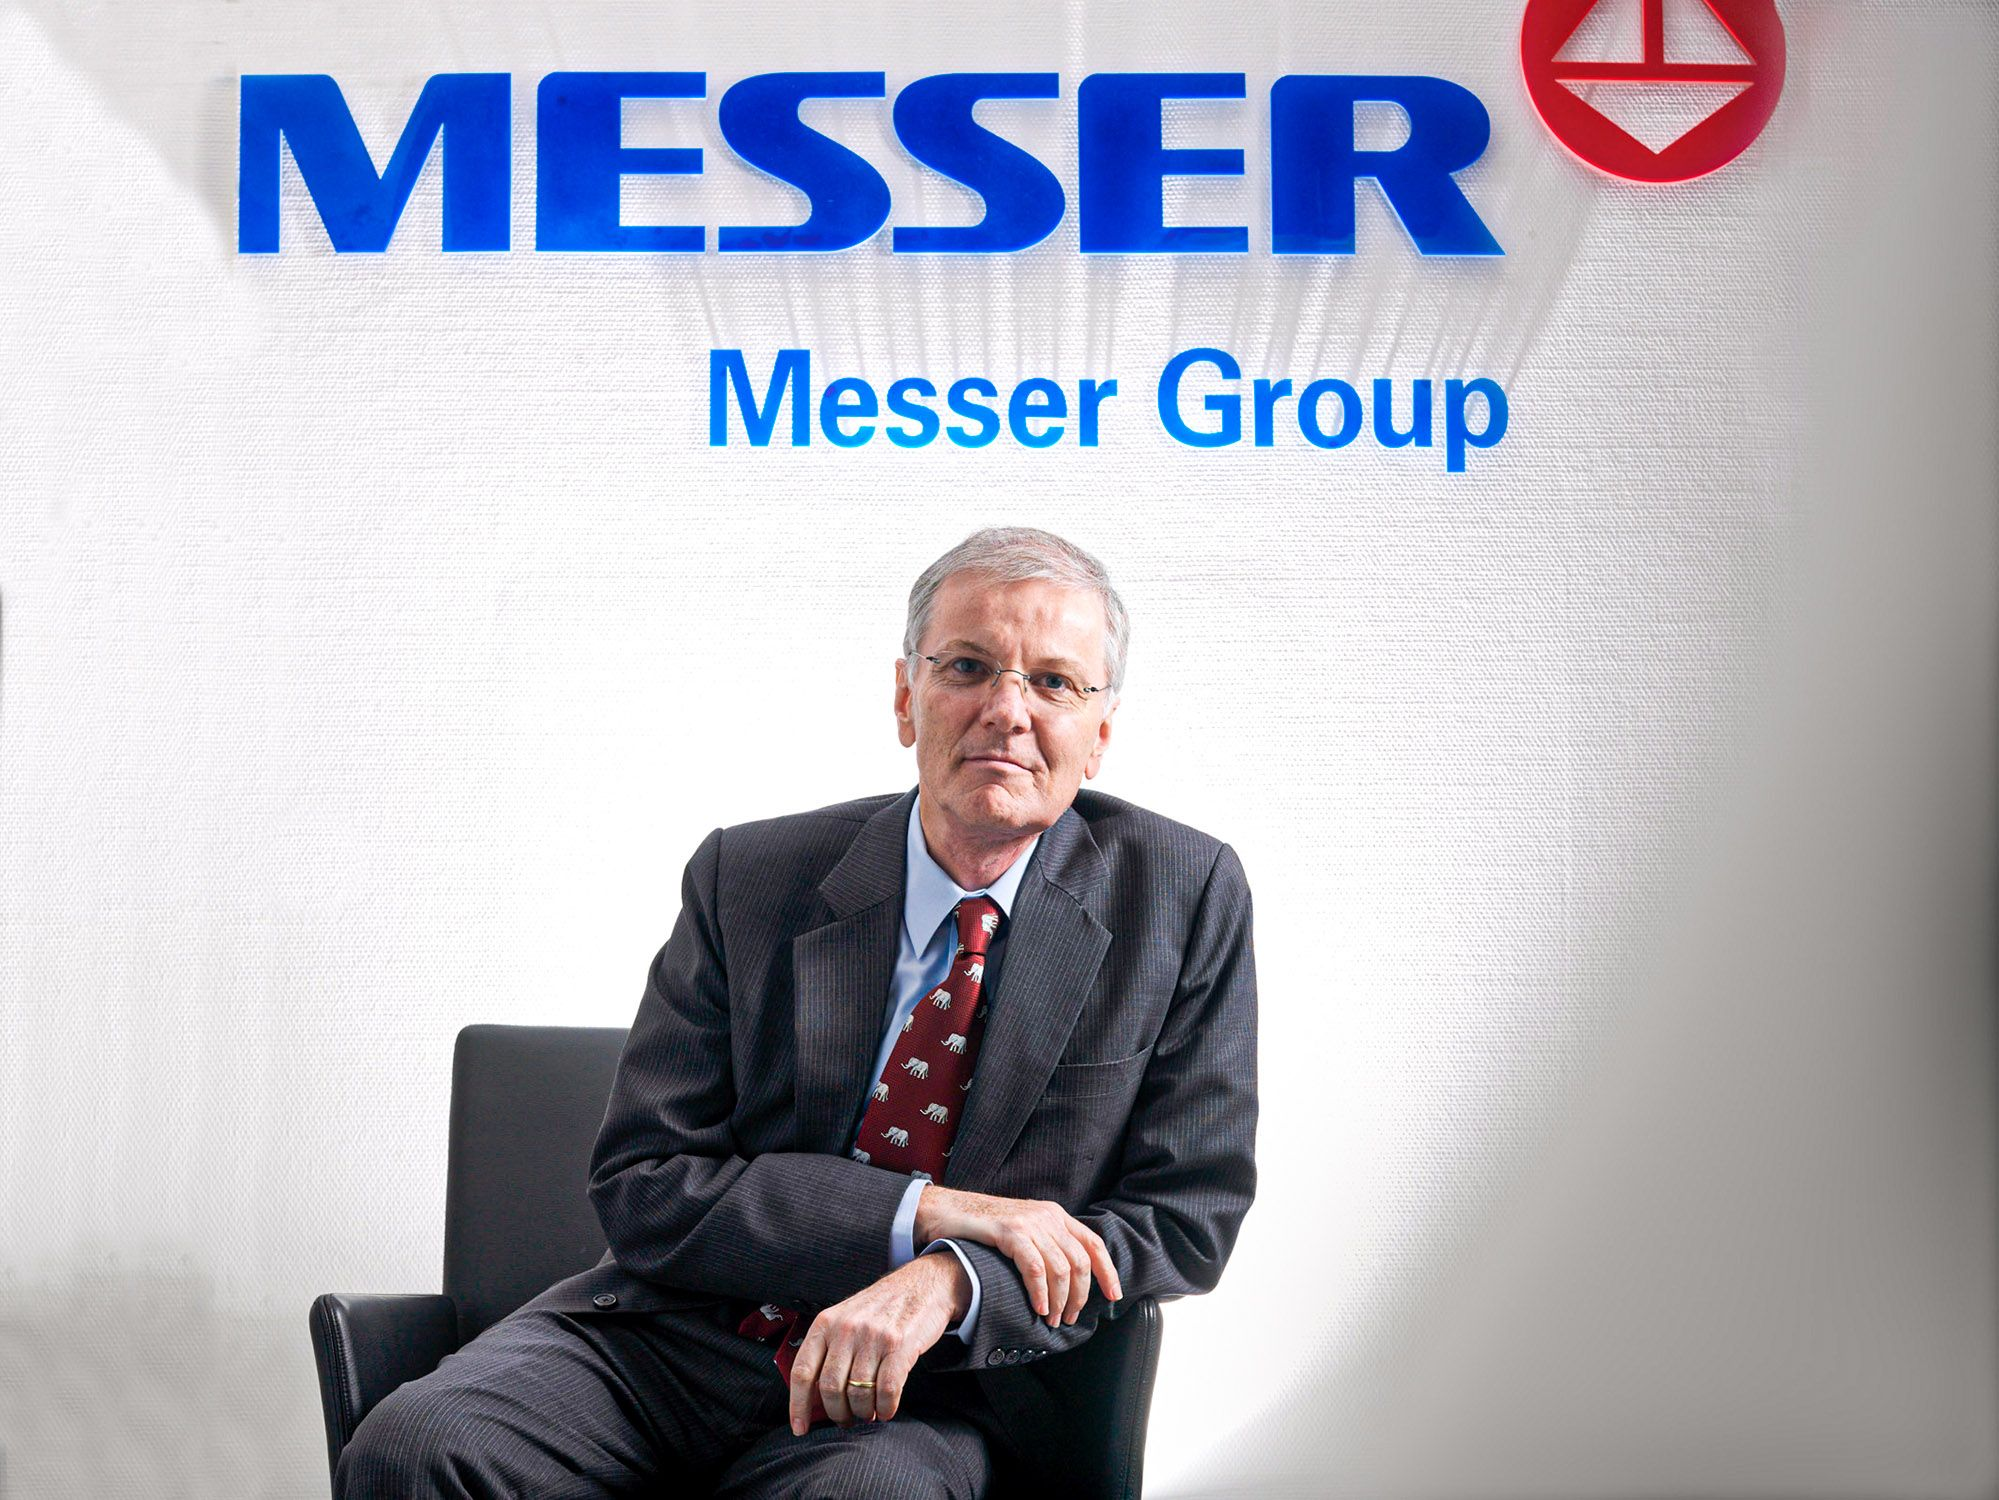 Messer Group | Stefan Messer